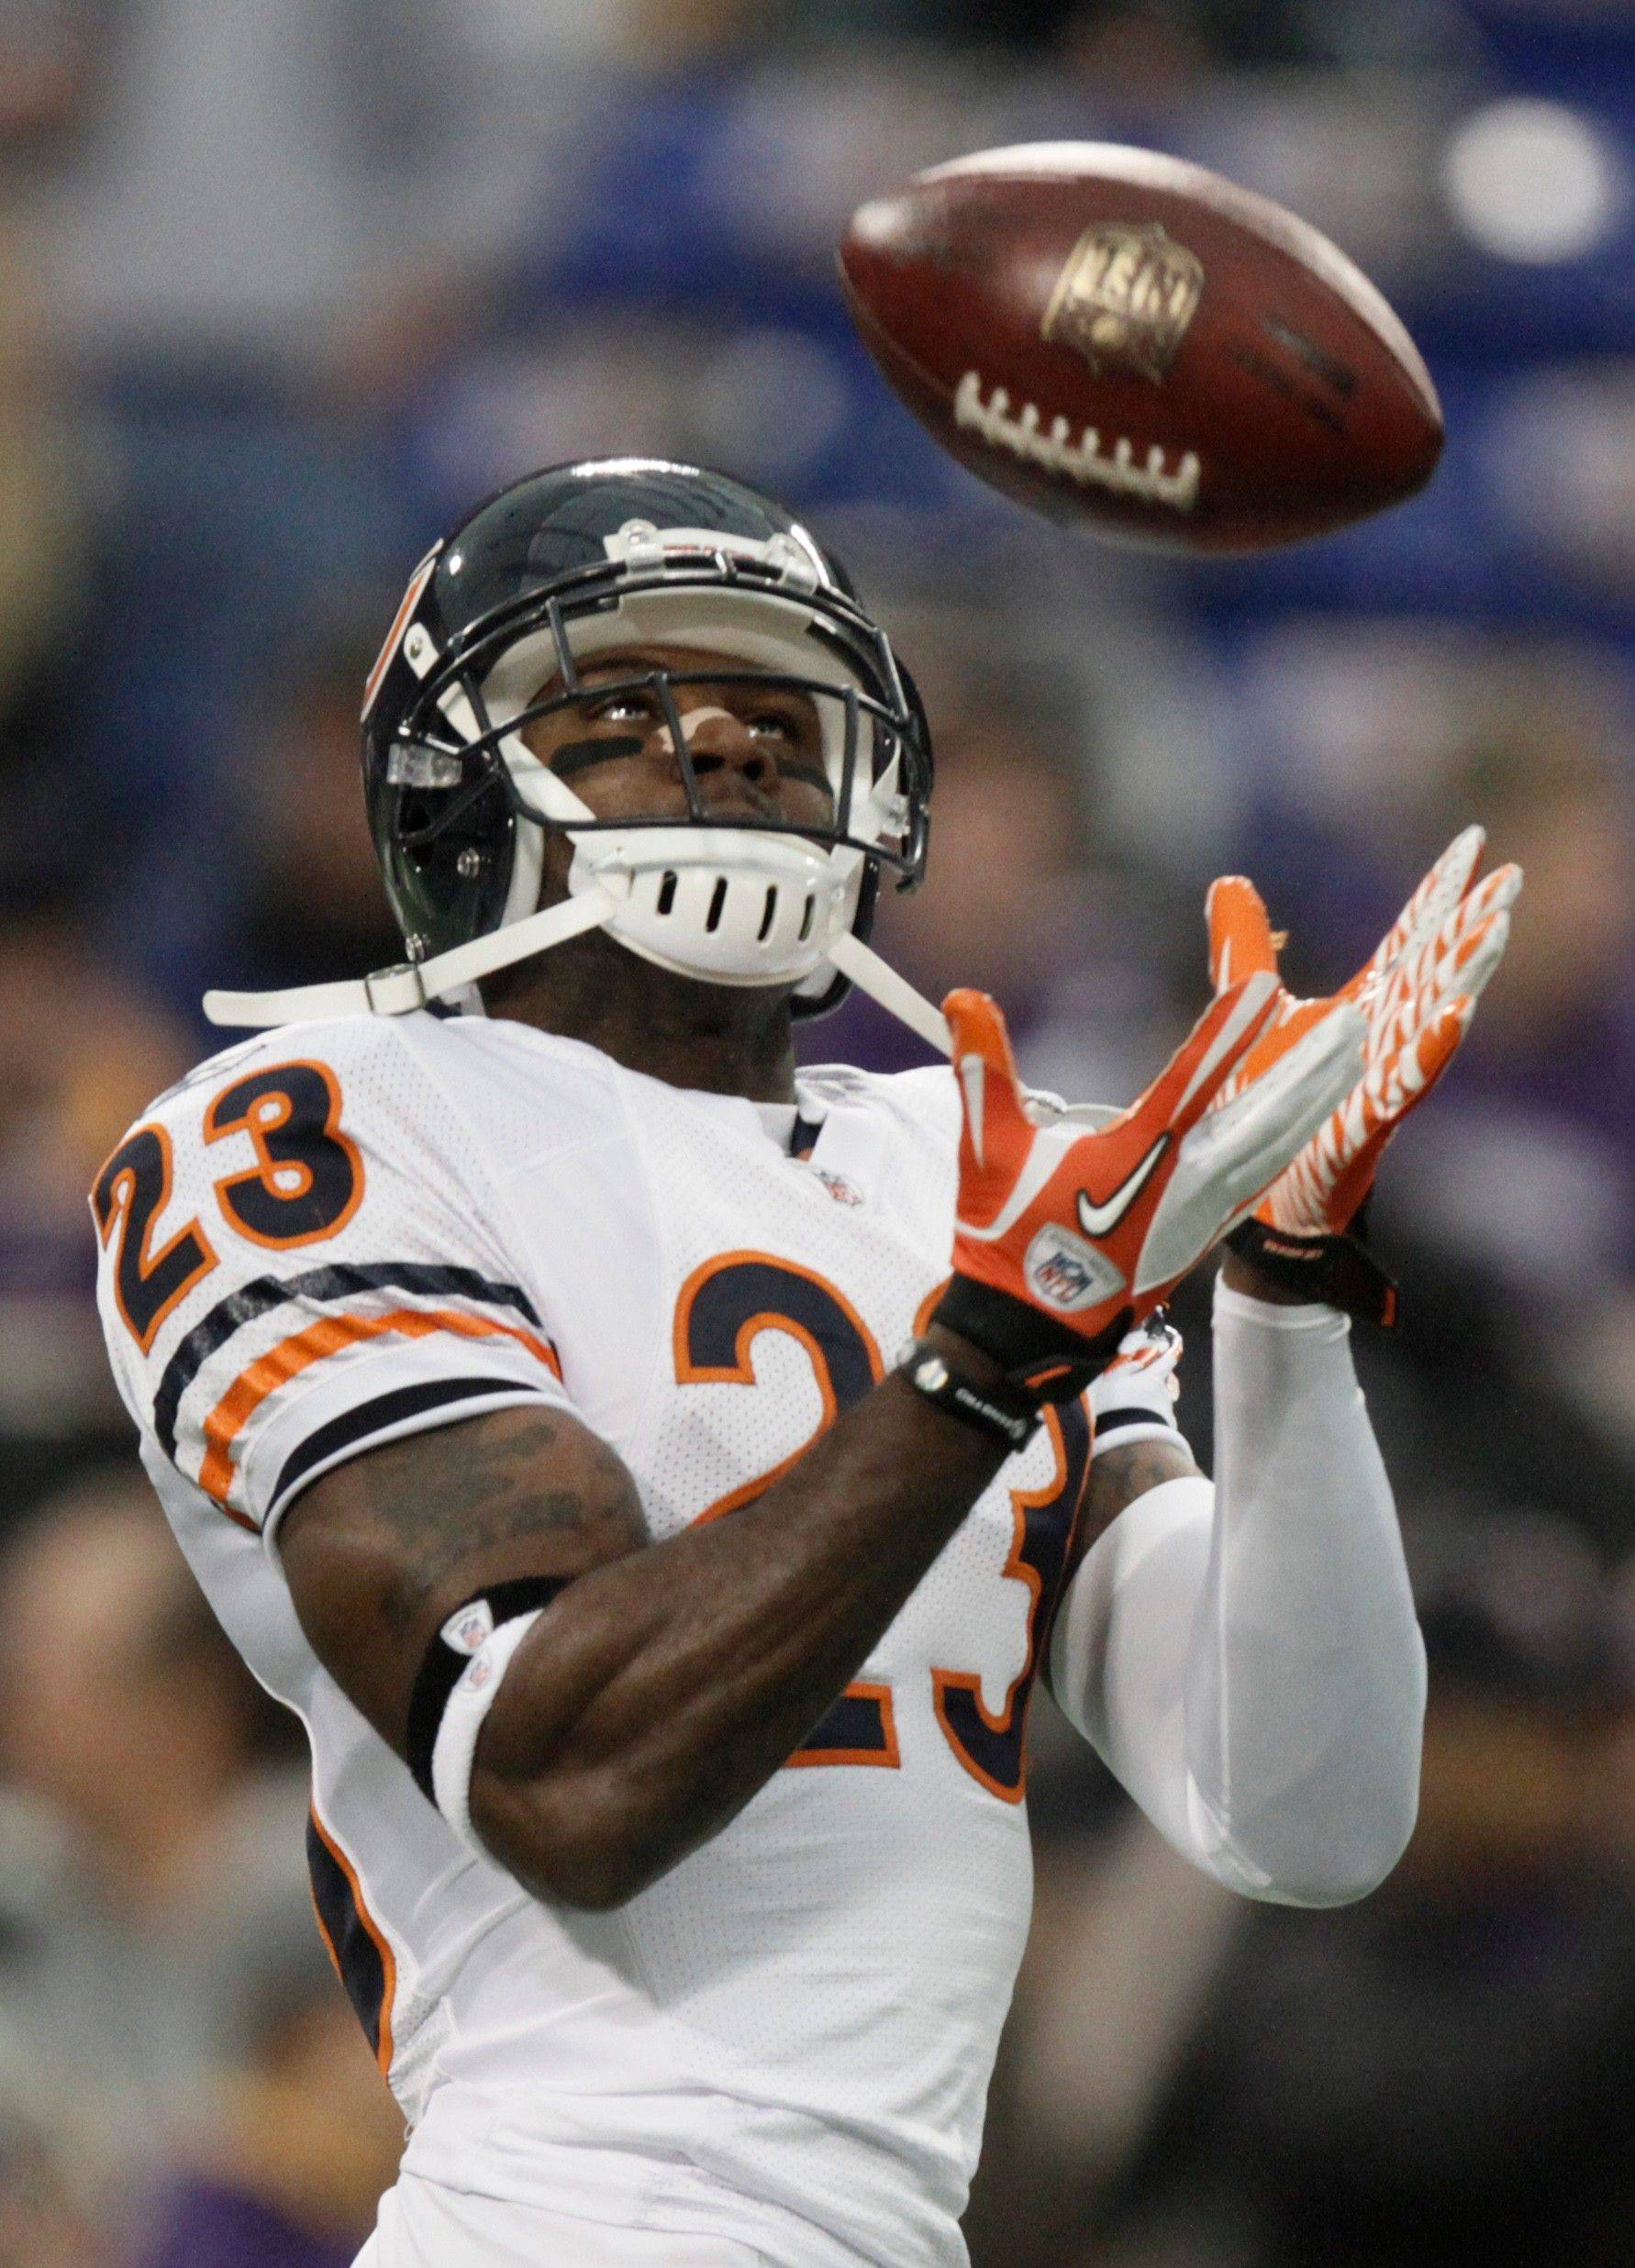 Chicago Bears wide receiver Devin Hester warms up before an NFL football game against the Minnesota Vikings.